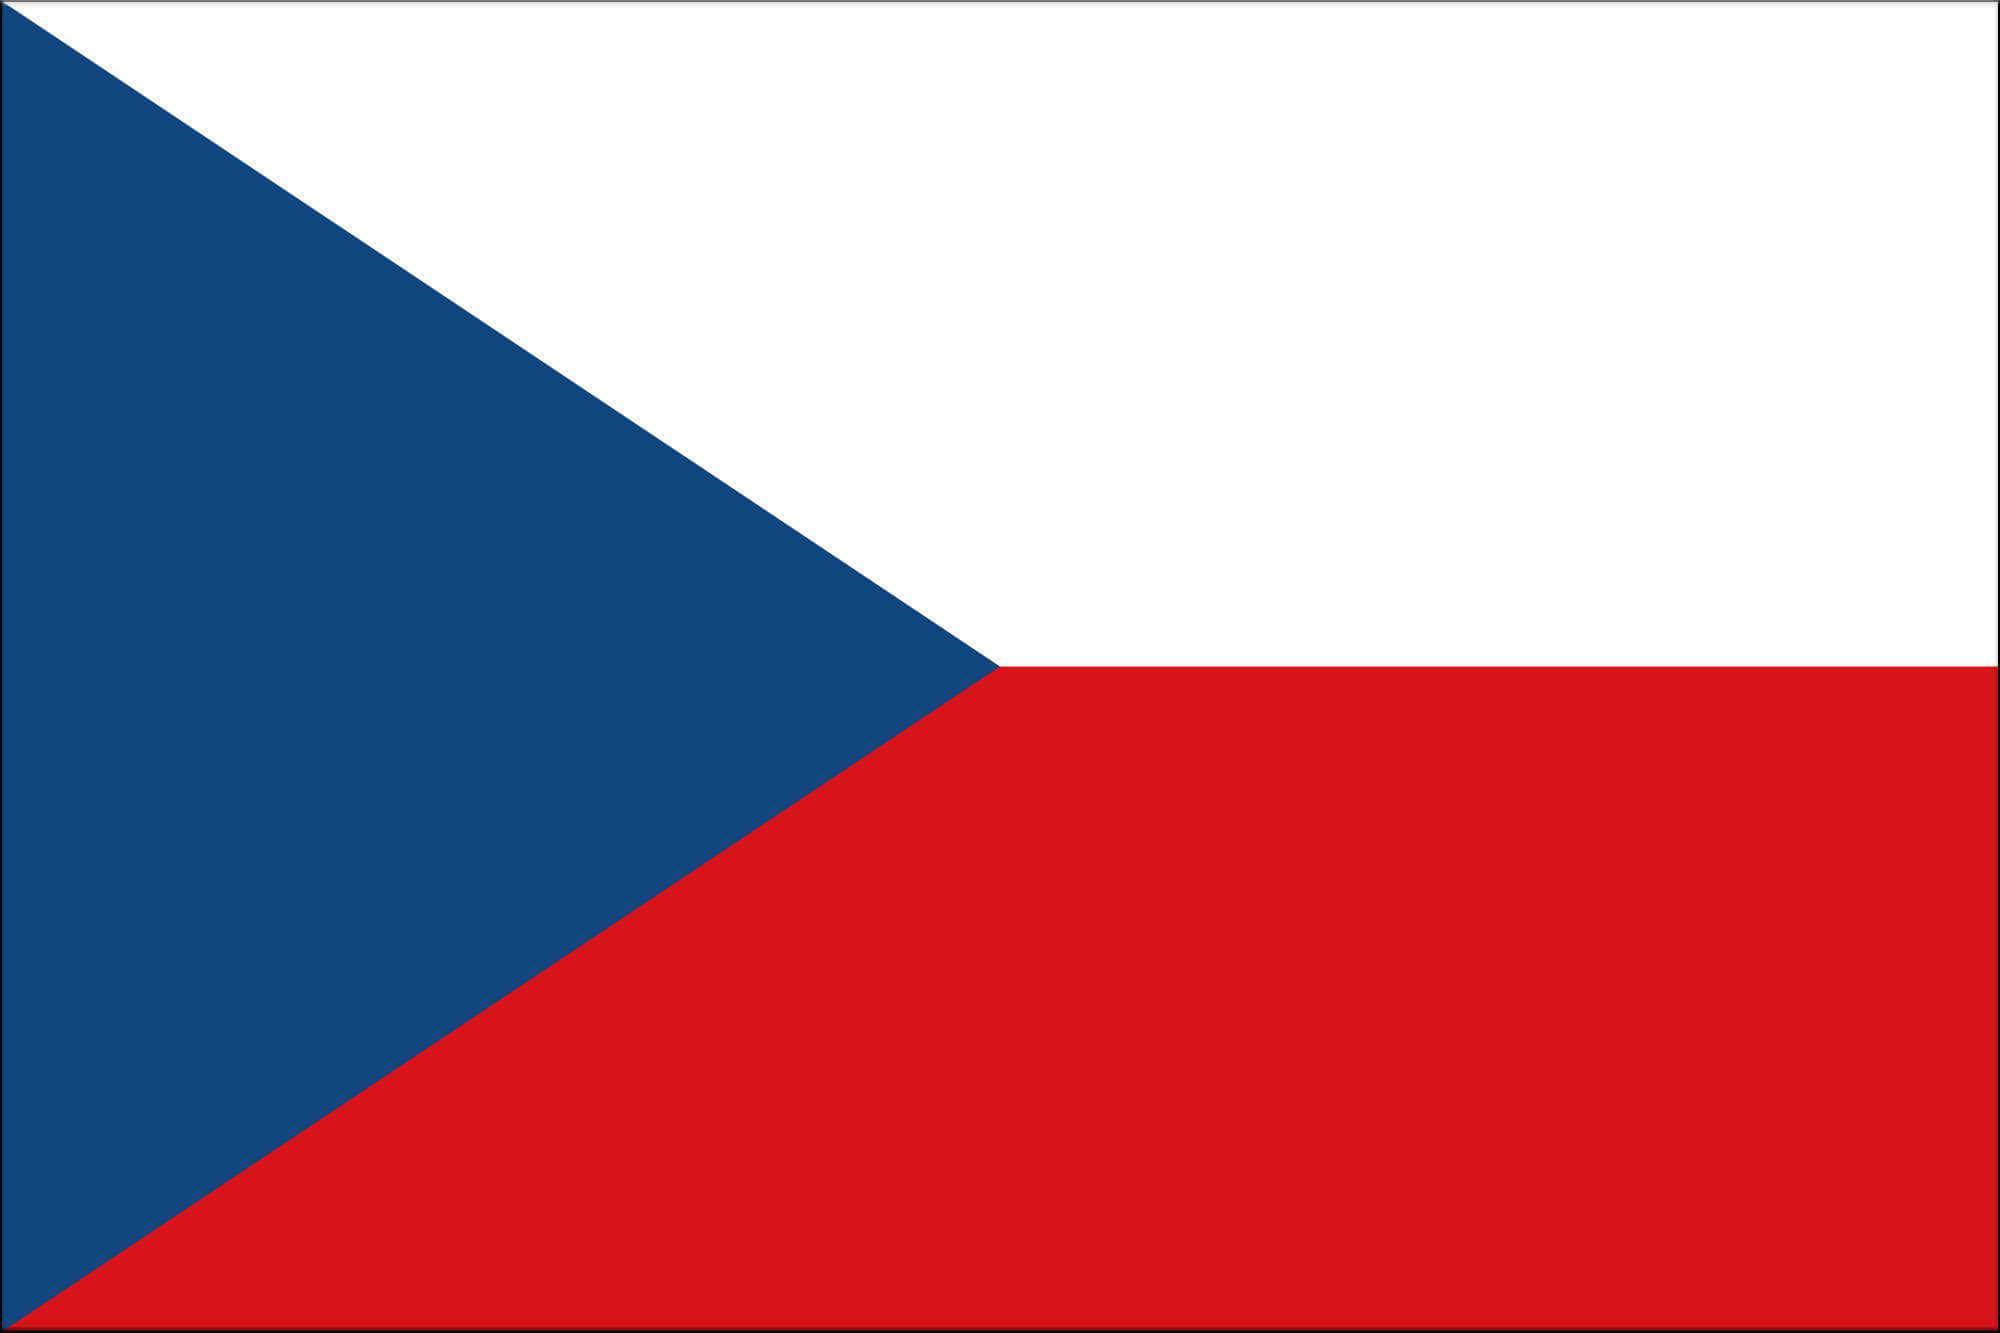 Czech Flags (The Czech Republic) from The World Flag Database